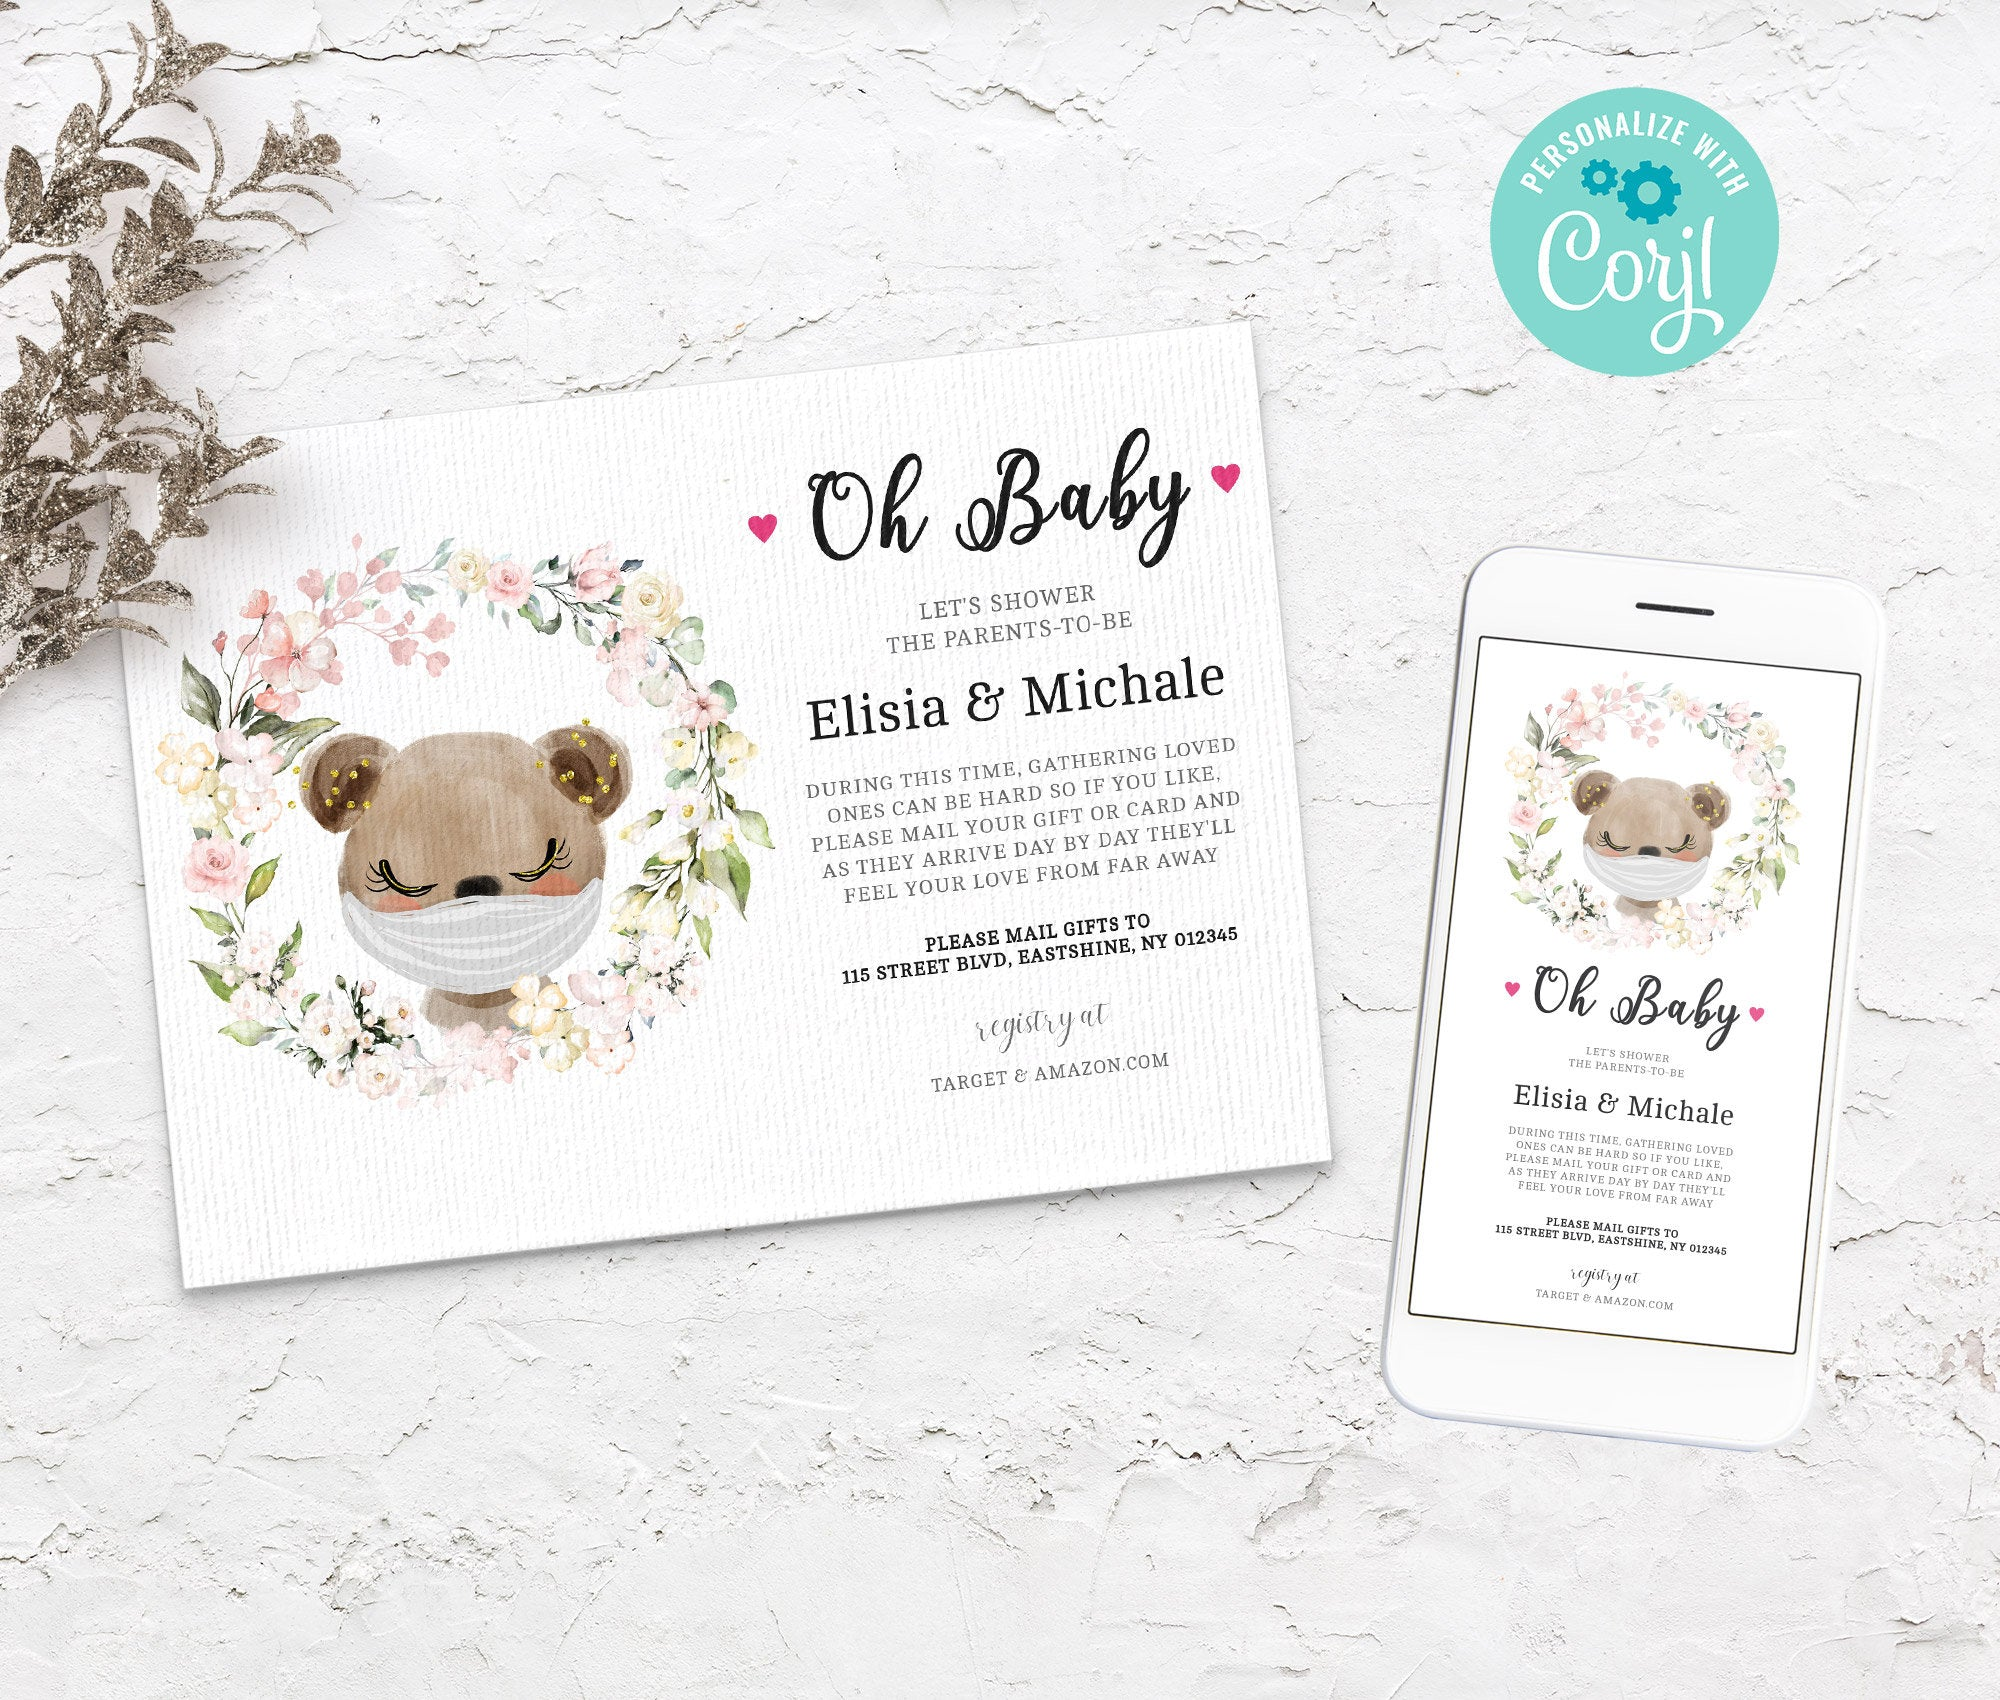 Baby Shower by Mail Template Bear, Animal Baby shower invitation, Shower by Mail, Shower Evite, Editable, Instant Download - 3611 BS3601